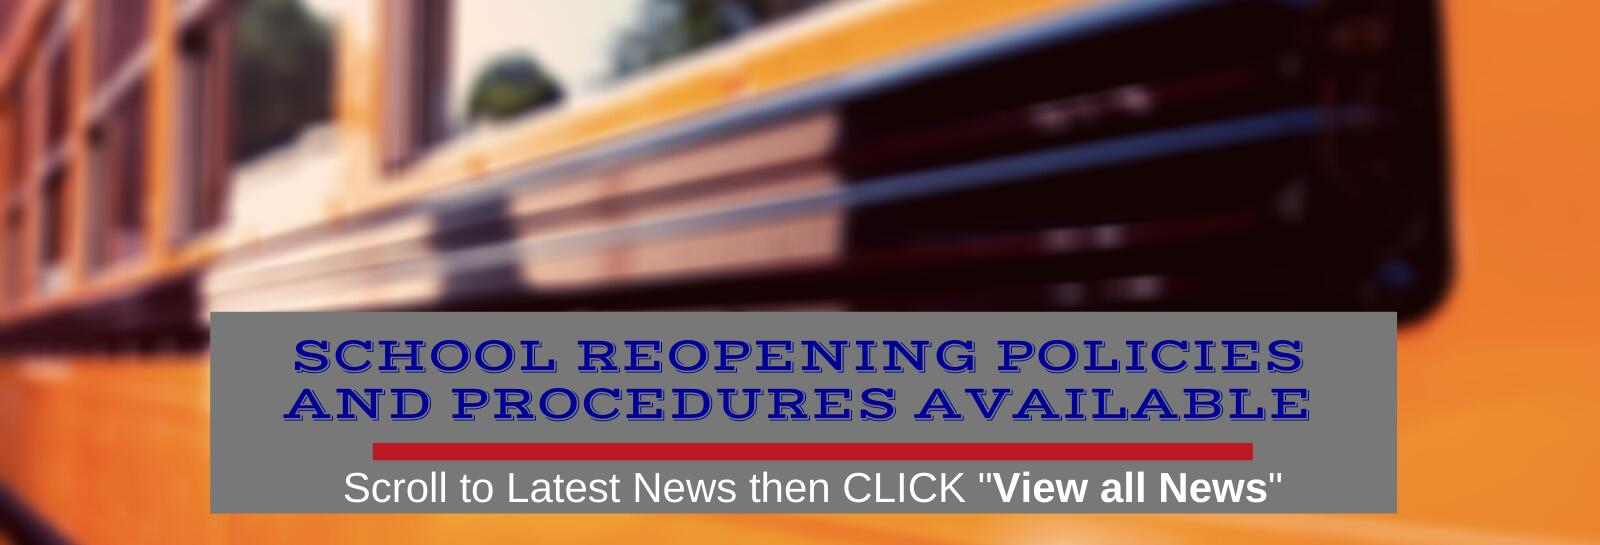 Reopening School Policies & Procedures